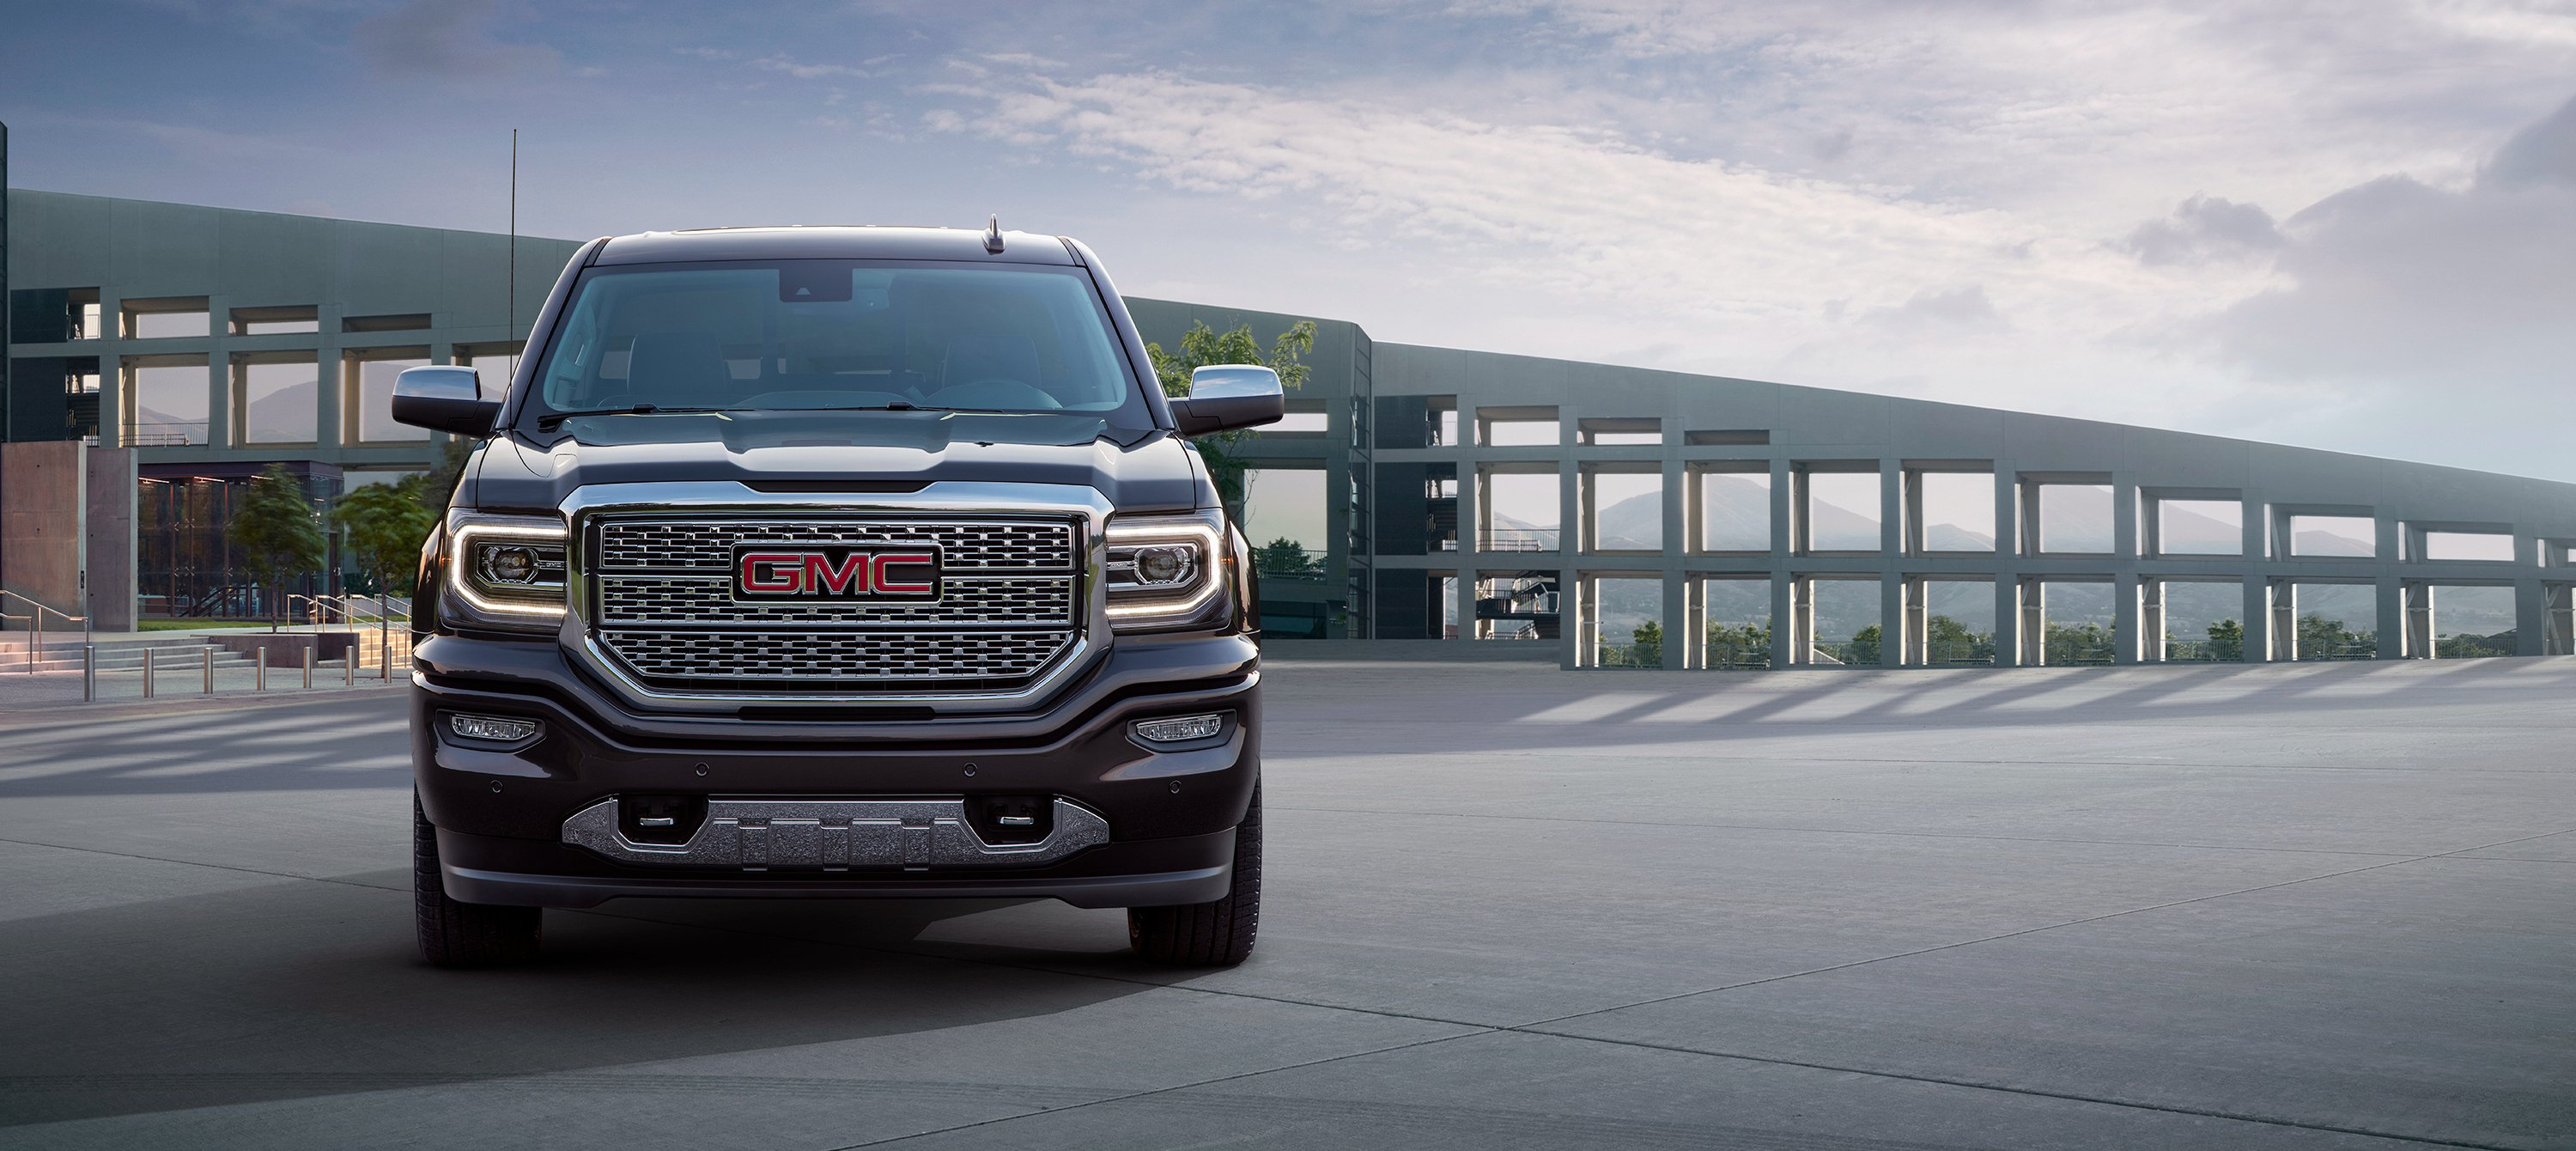 2017 GMC Sierra 1500 Denali Ultimate Crew Cab 4z4 Pickup Wallpaper